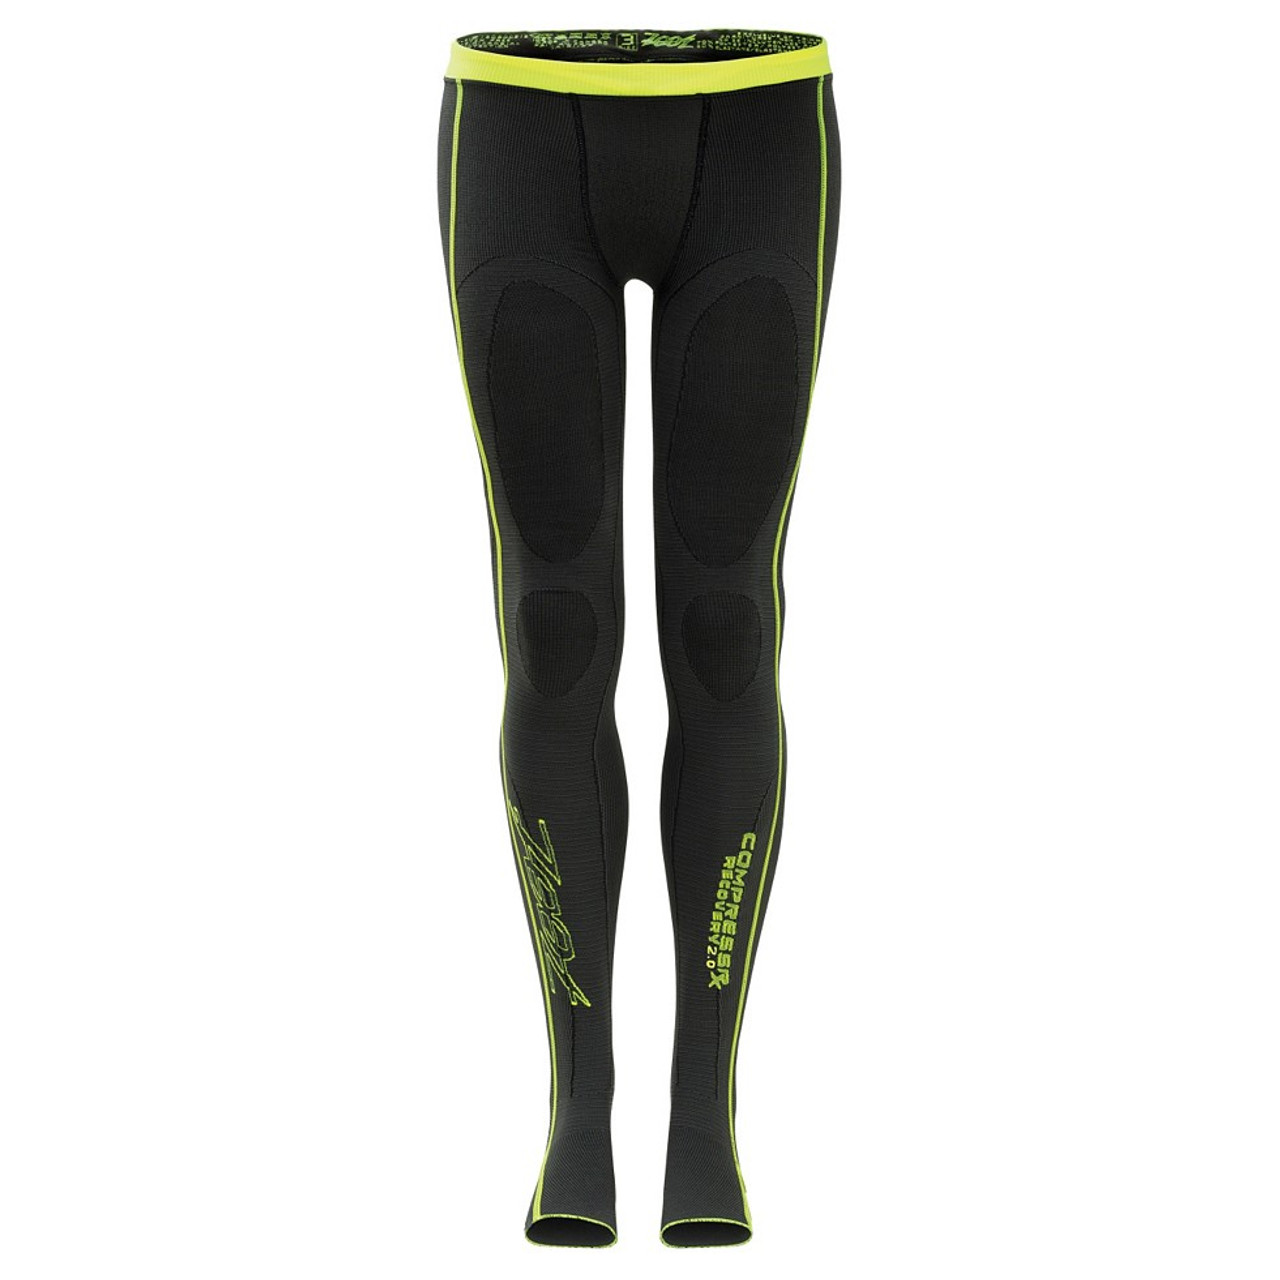 0d22a9070d Zoot Ultra Recovery 2.0 CRx Tight - 2016 - Triathlete Sports